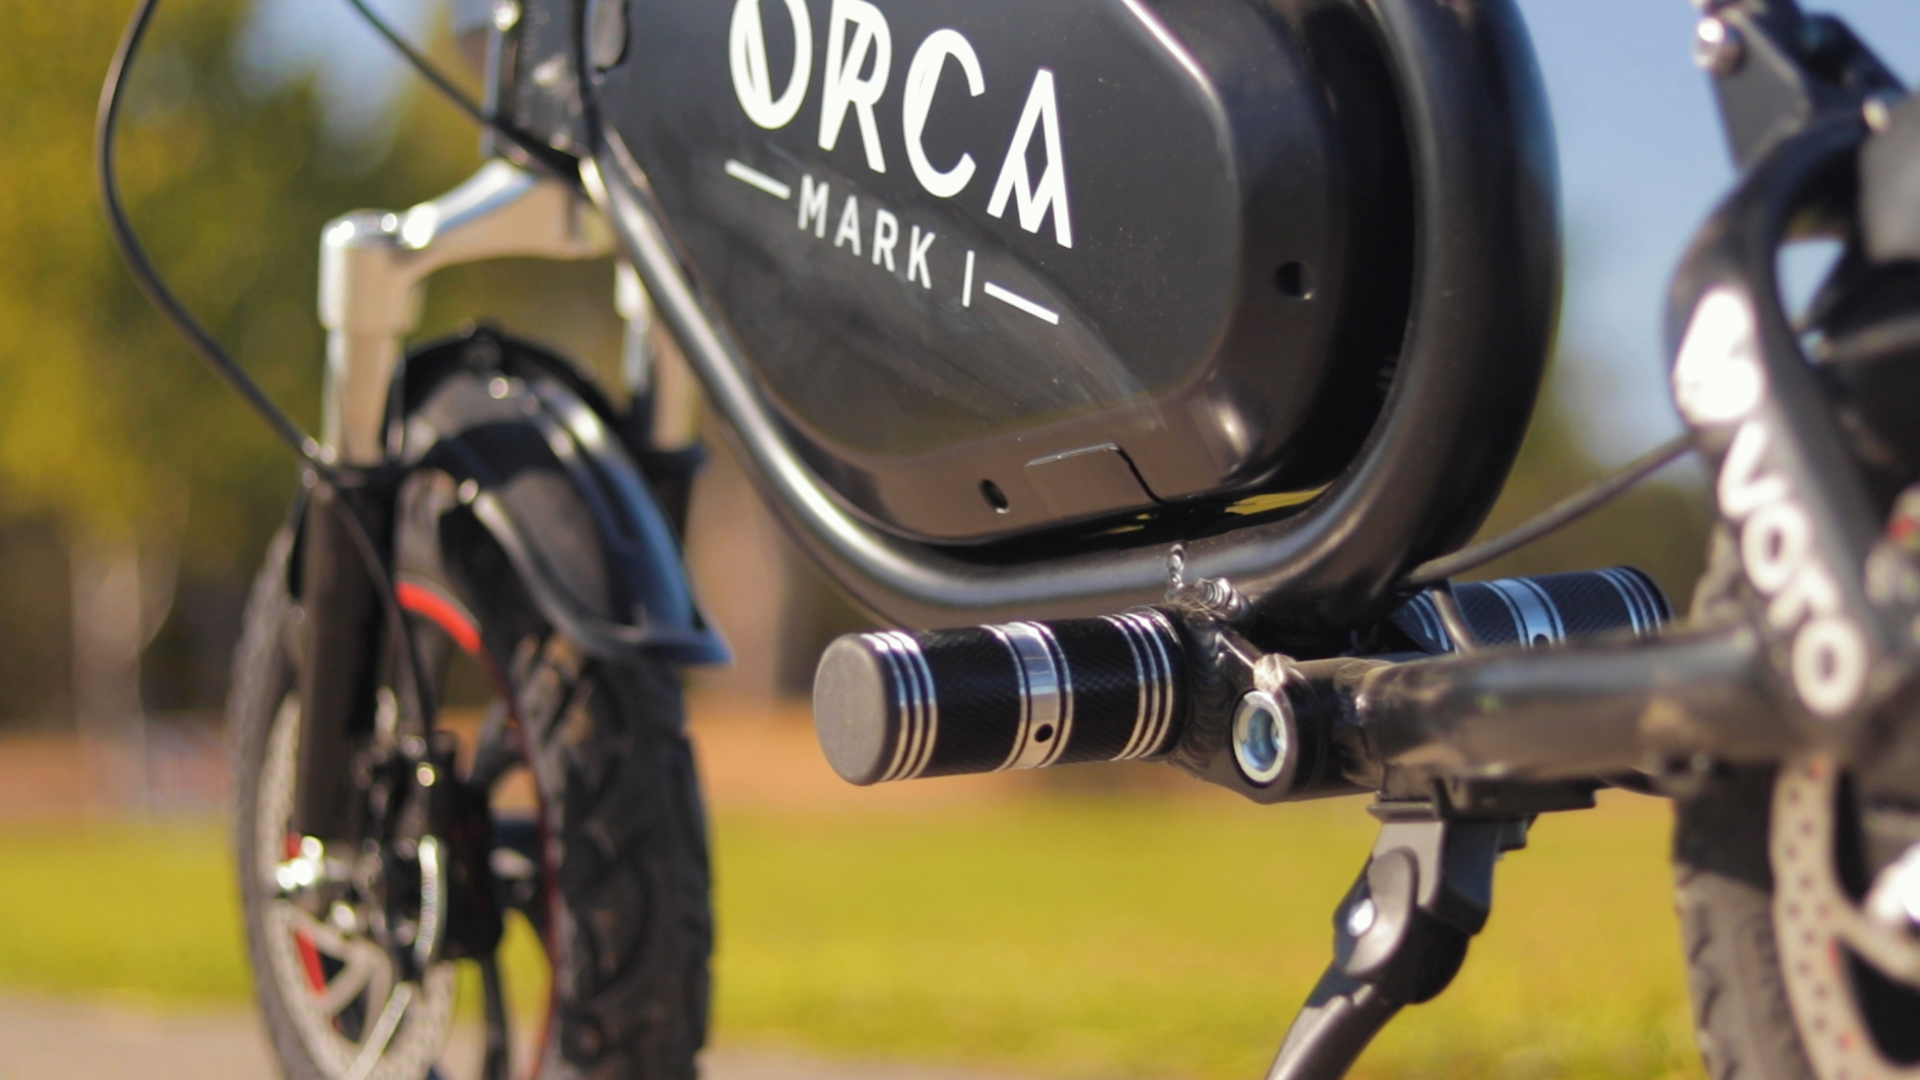 voro-motors-orca-mark-1-electric-scooter-review-2019-pegs.jpg